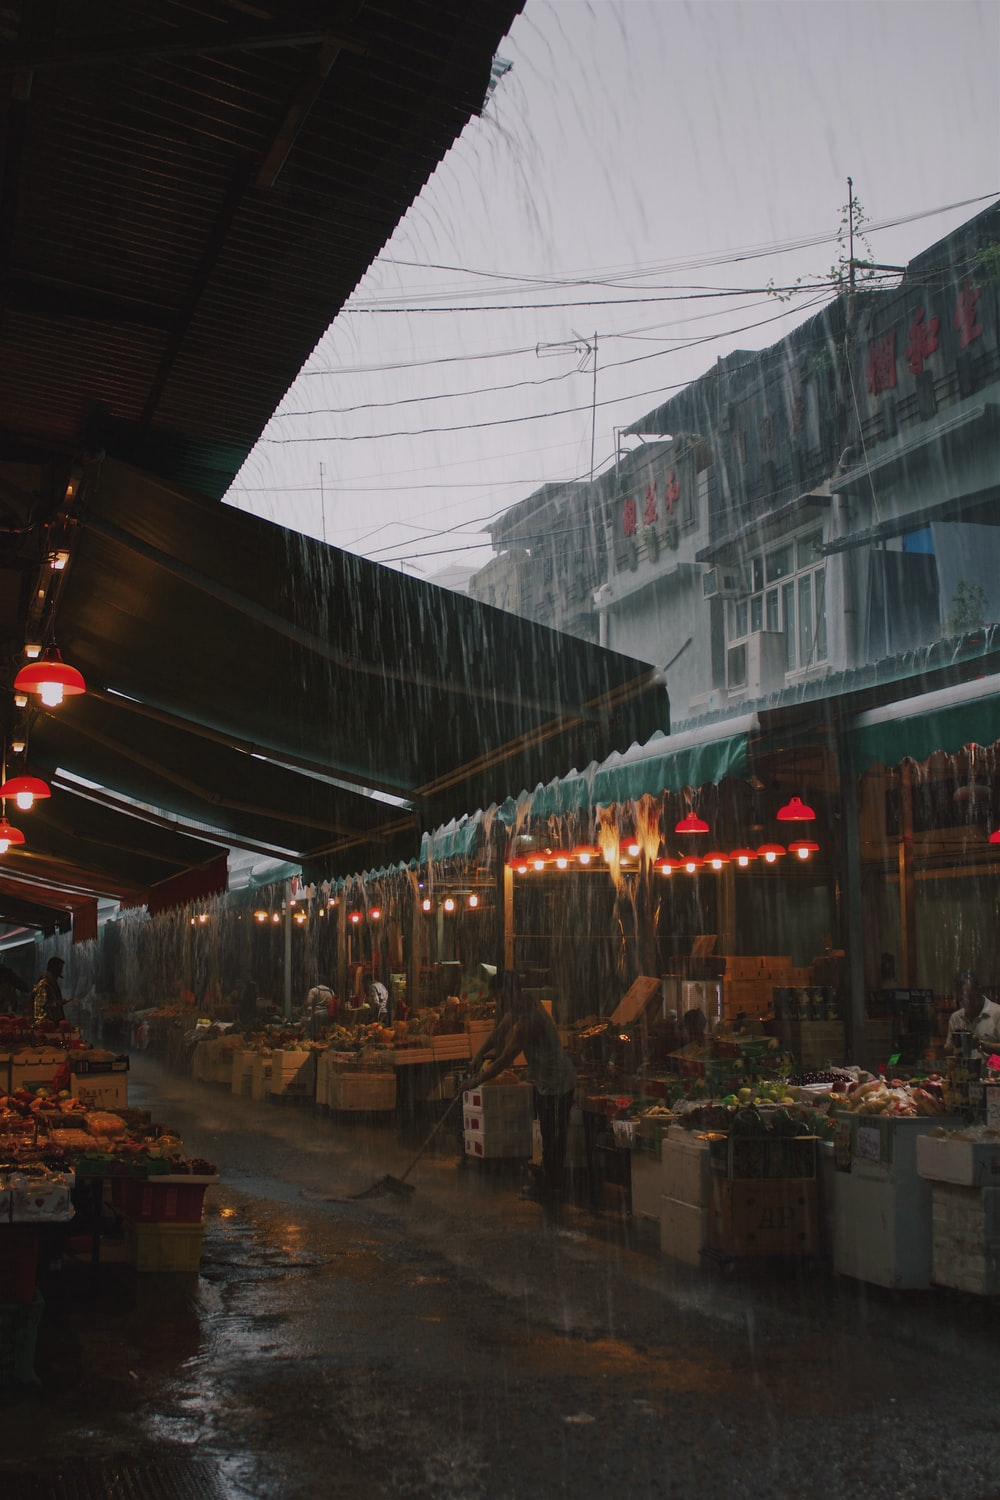 people in the market near different goods on display during rainy season